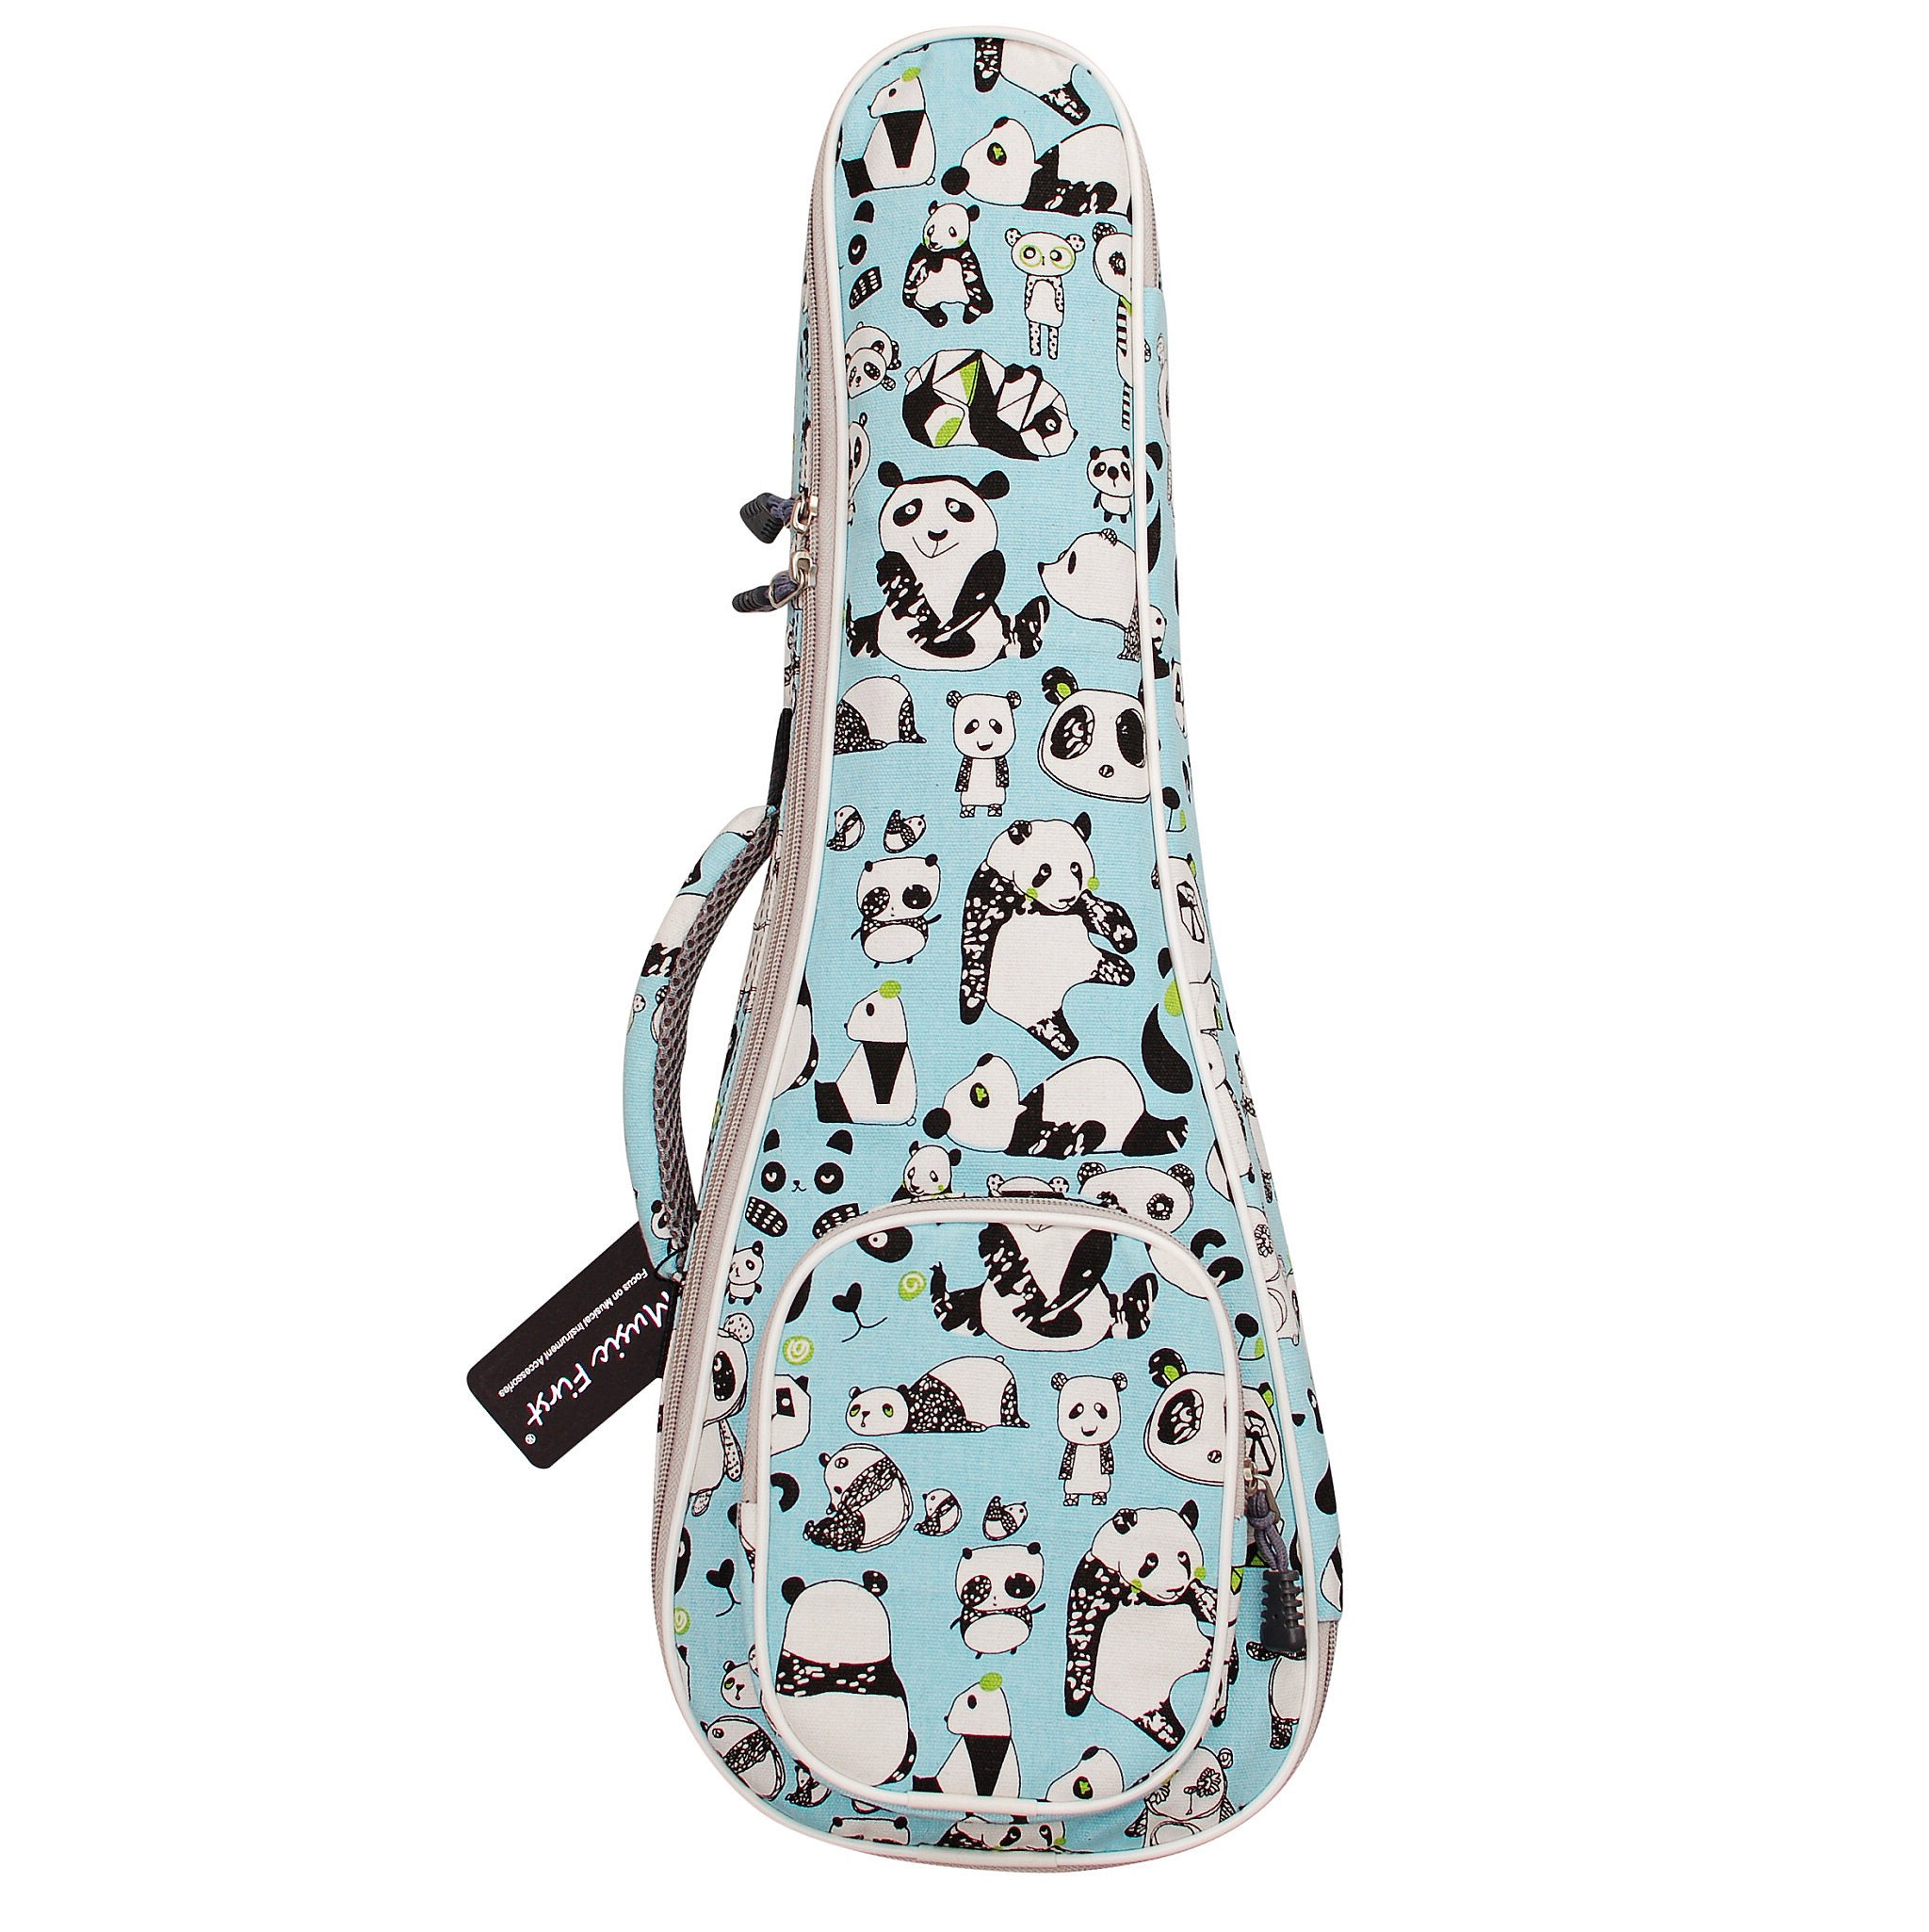 MUSIC FIRST cotton''PANDA'' ukulele case ukulele bag ukulele cover, New Arrial, Original Design, Best Christmas Gift. (21 inch Soprano, PANDA)